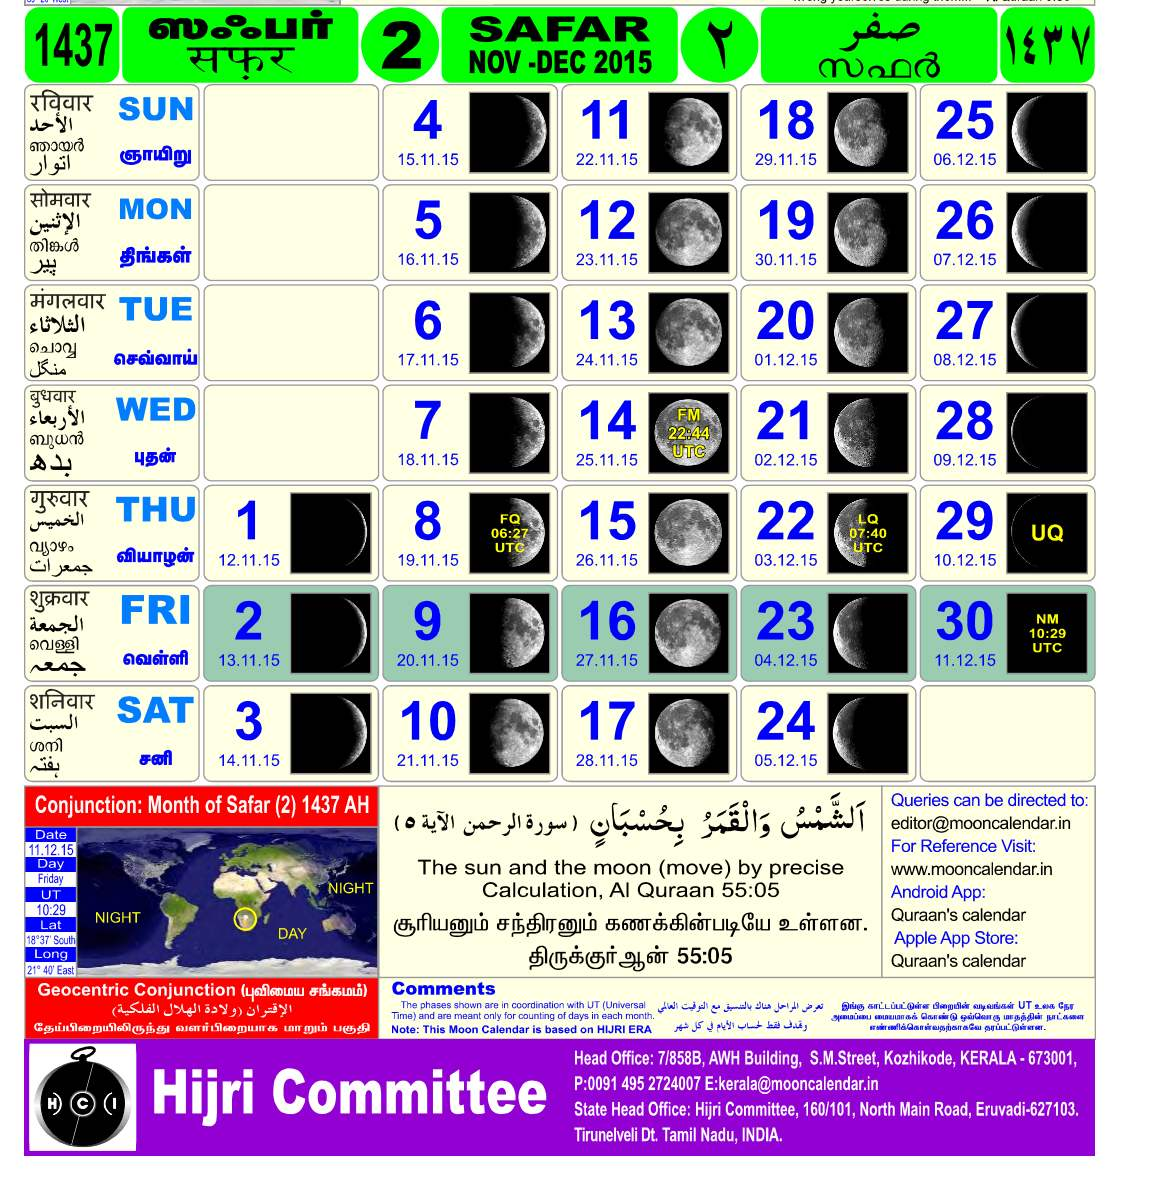 Hijri Calendar for the year 1437